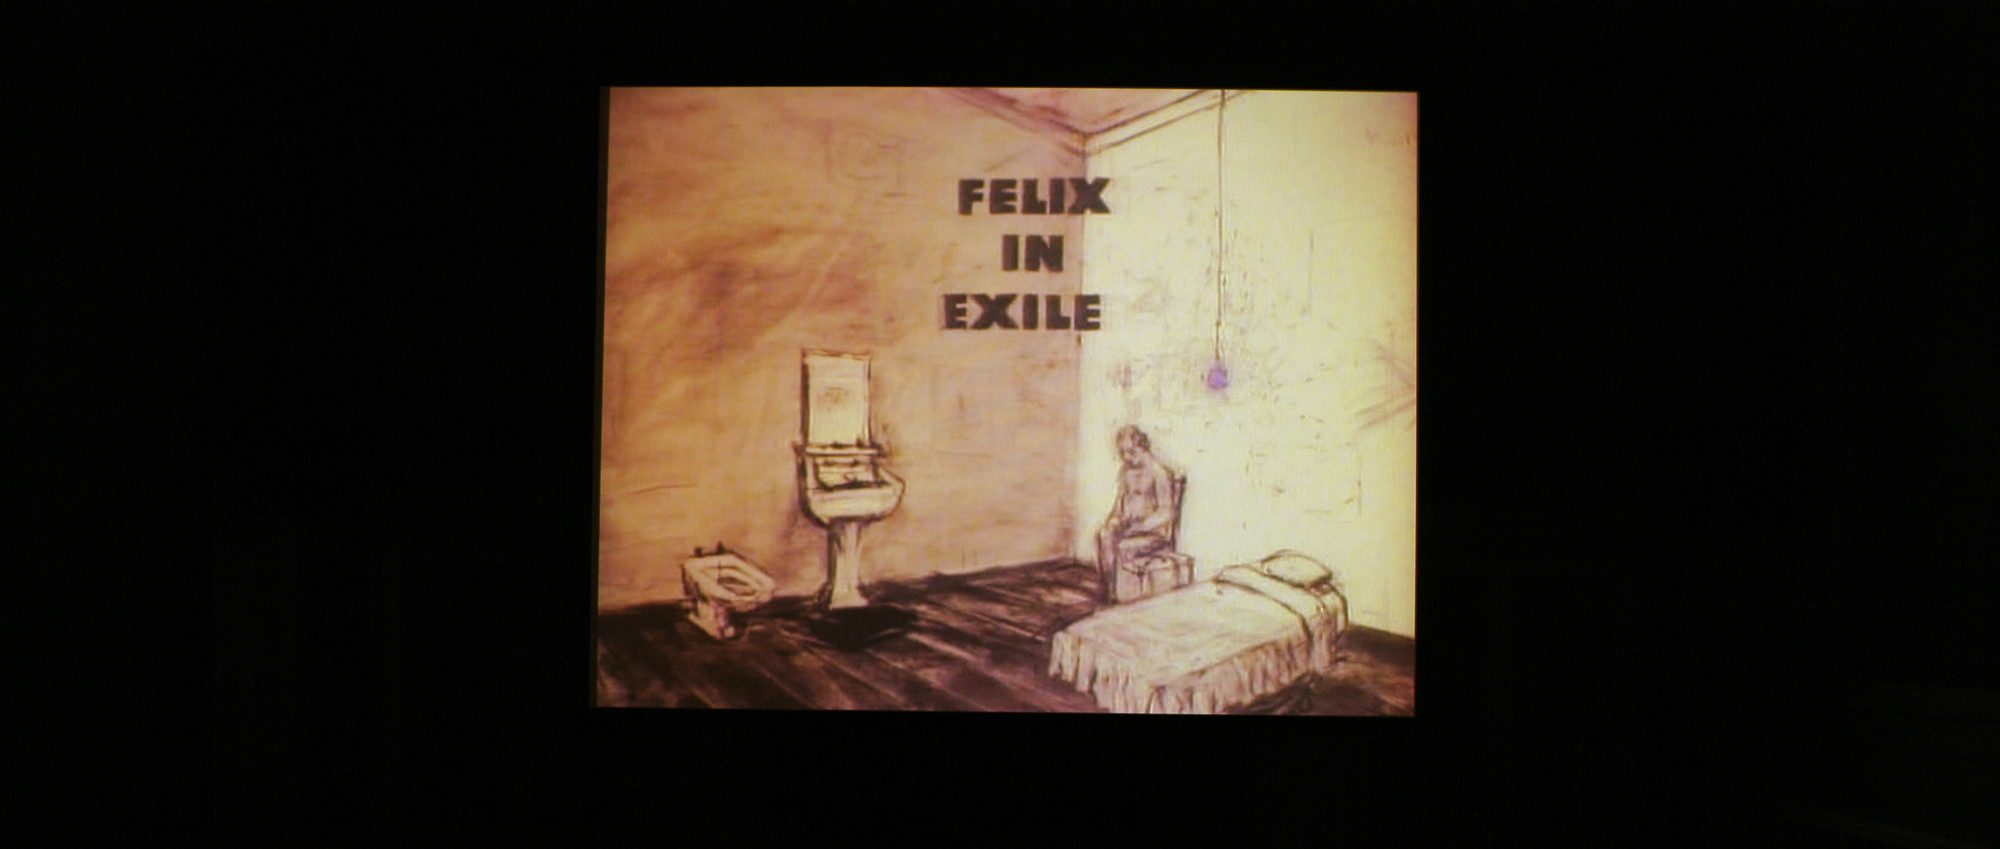 Felix in Exile, installation photo by Arthur Evans.